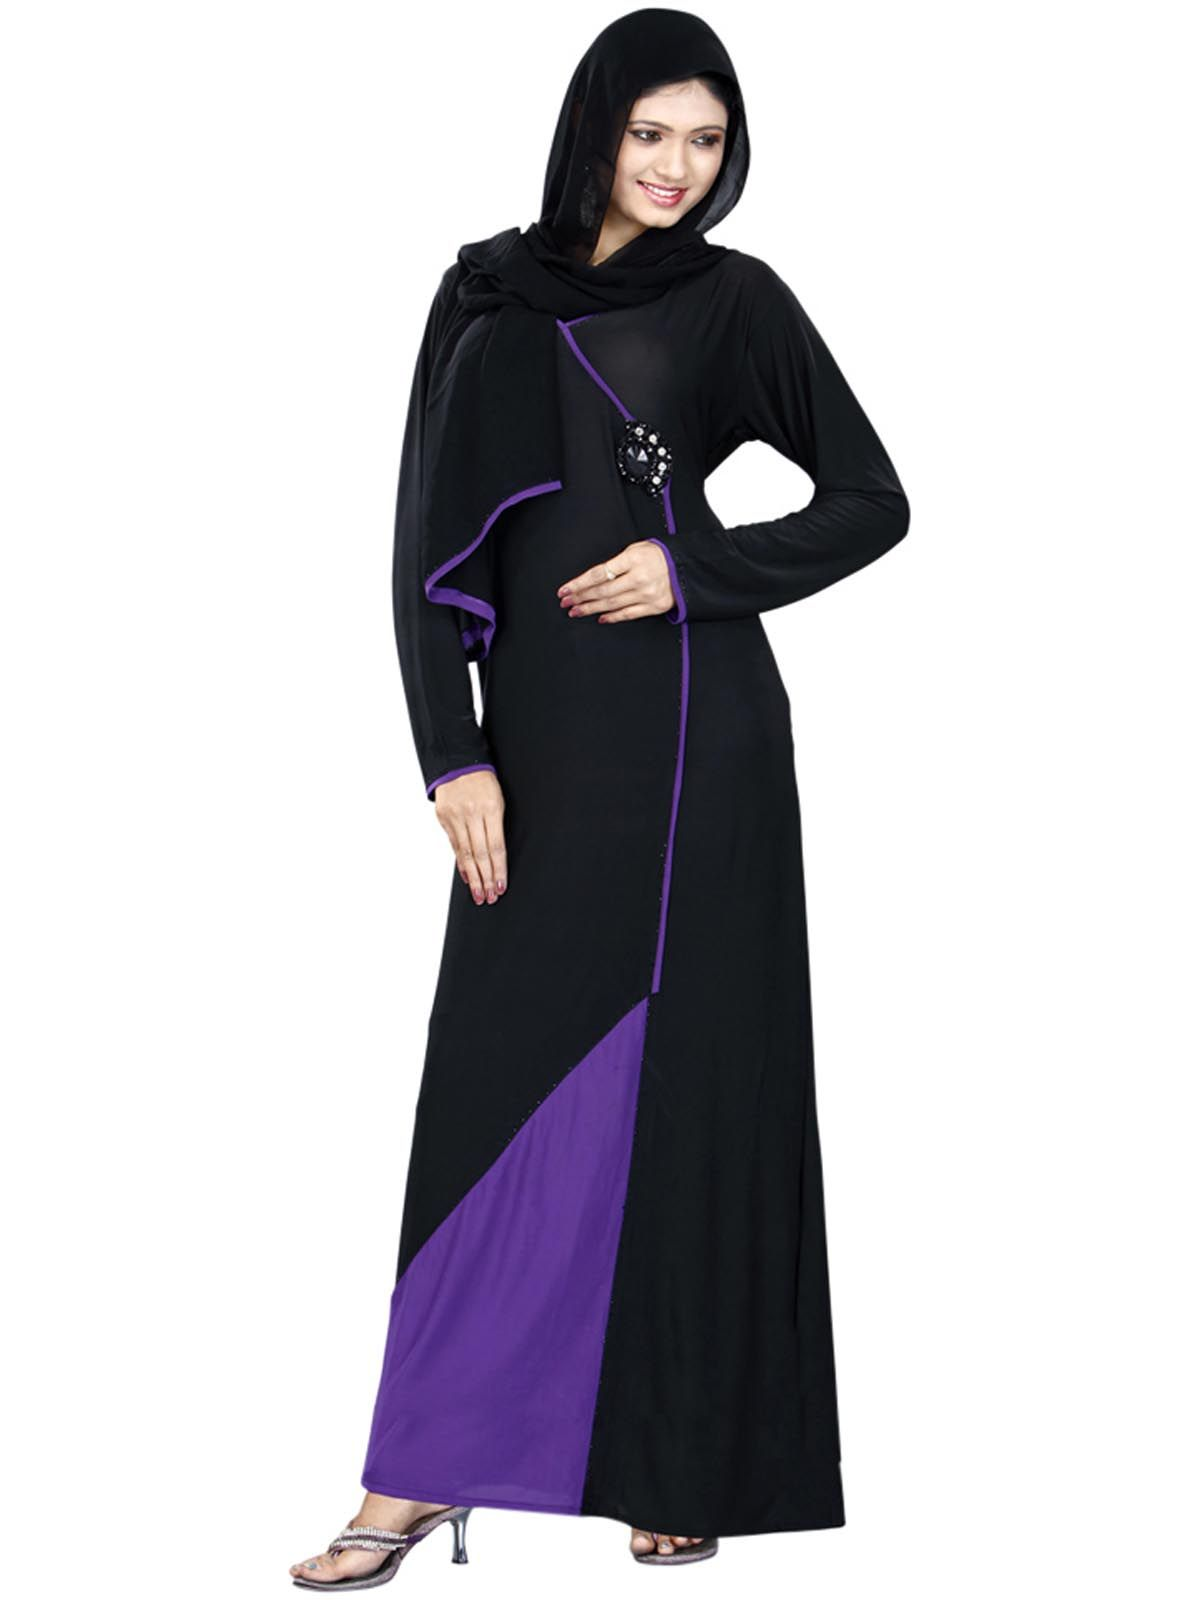 Solid Black And Purple Cly Abaya Burka With Stole Hijabfashion Hijabstyle Dress